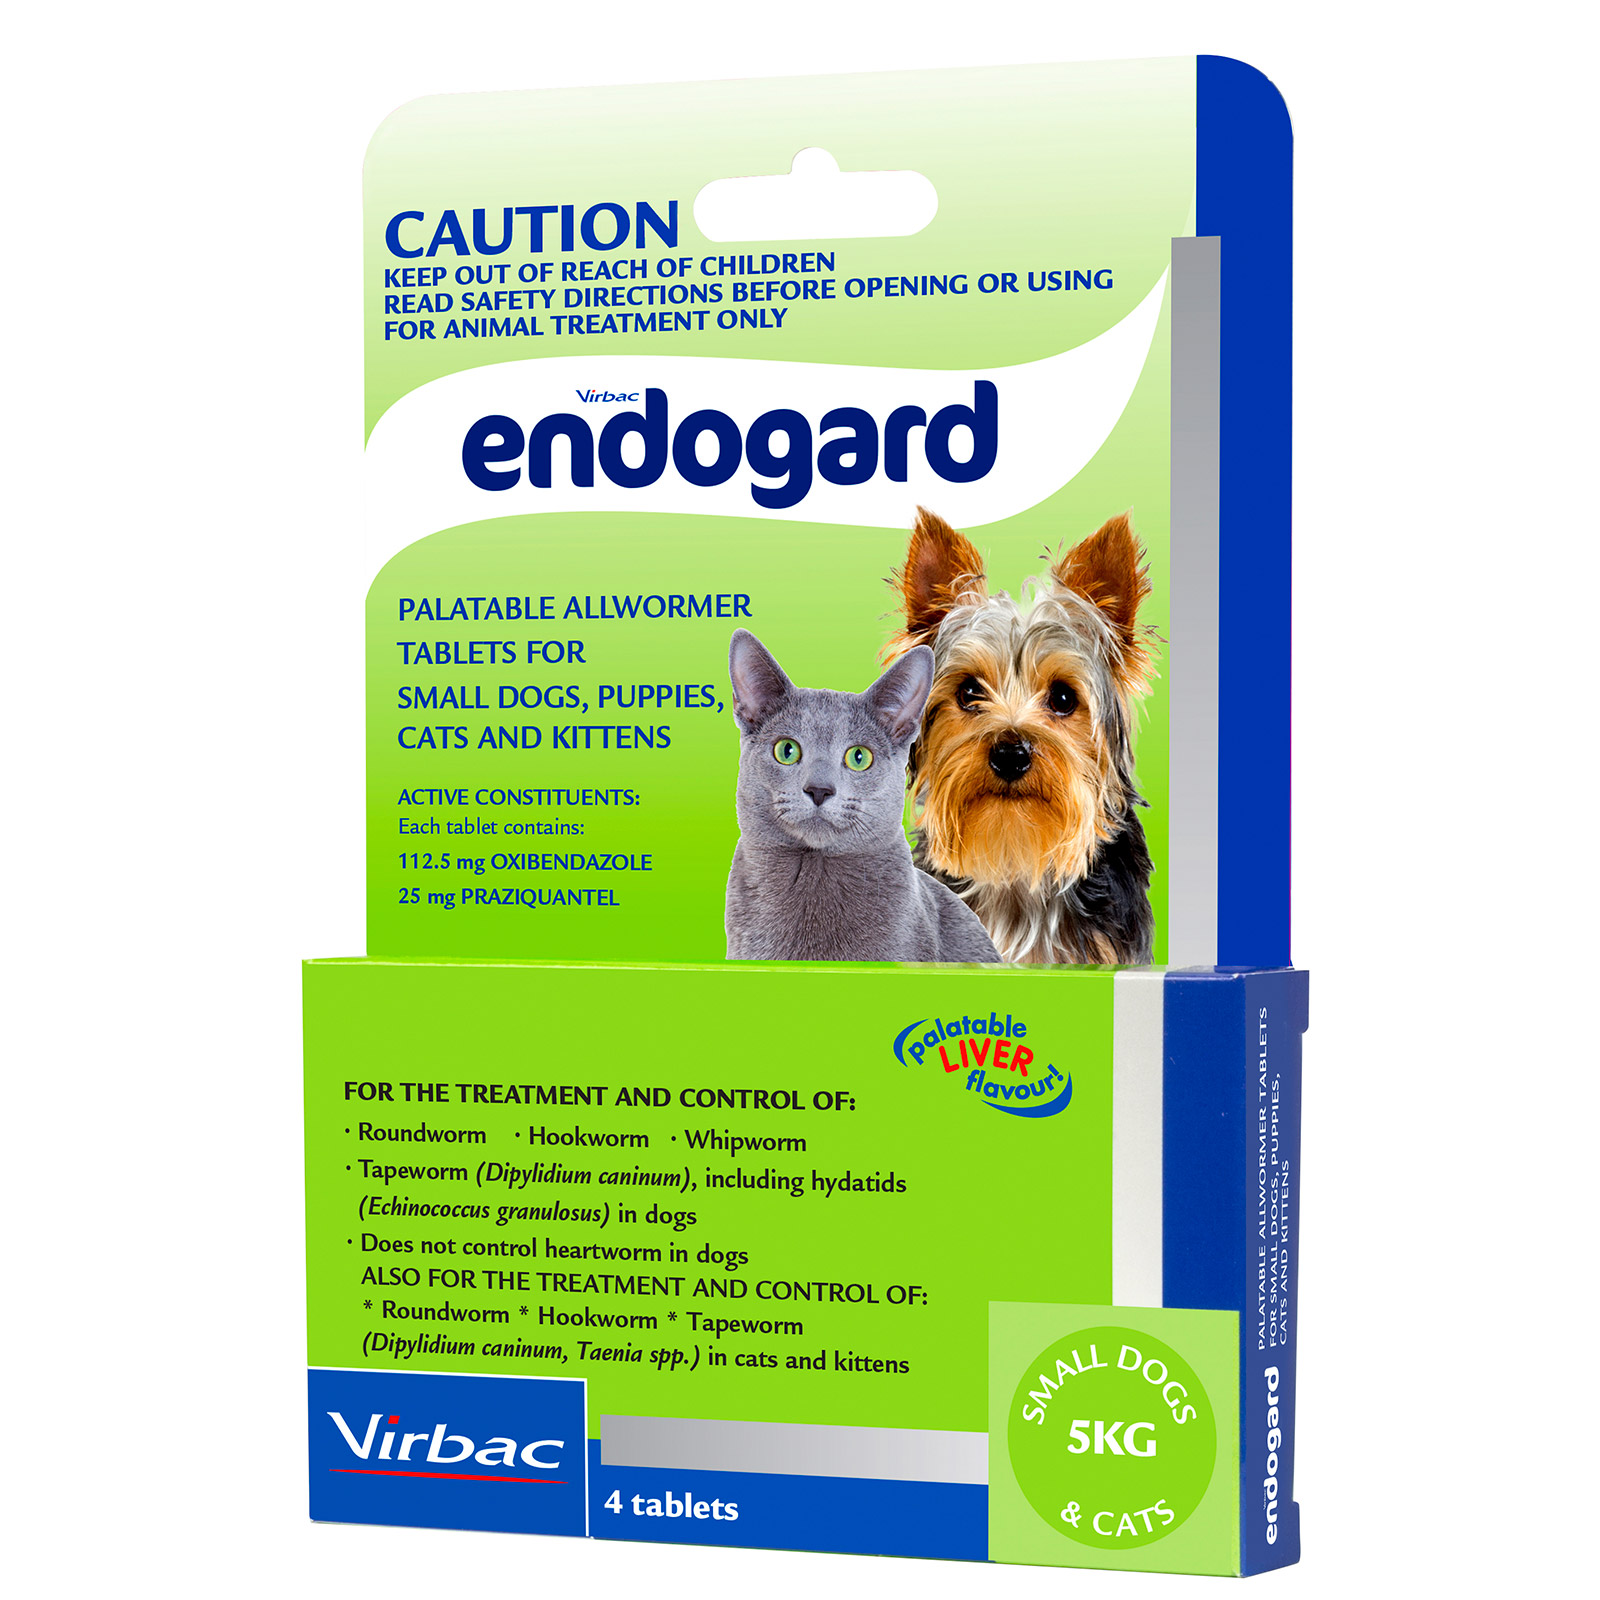 Endogard for dogs: instructions, properties and dosage